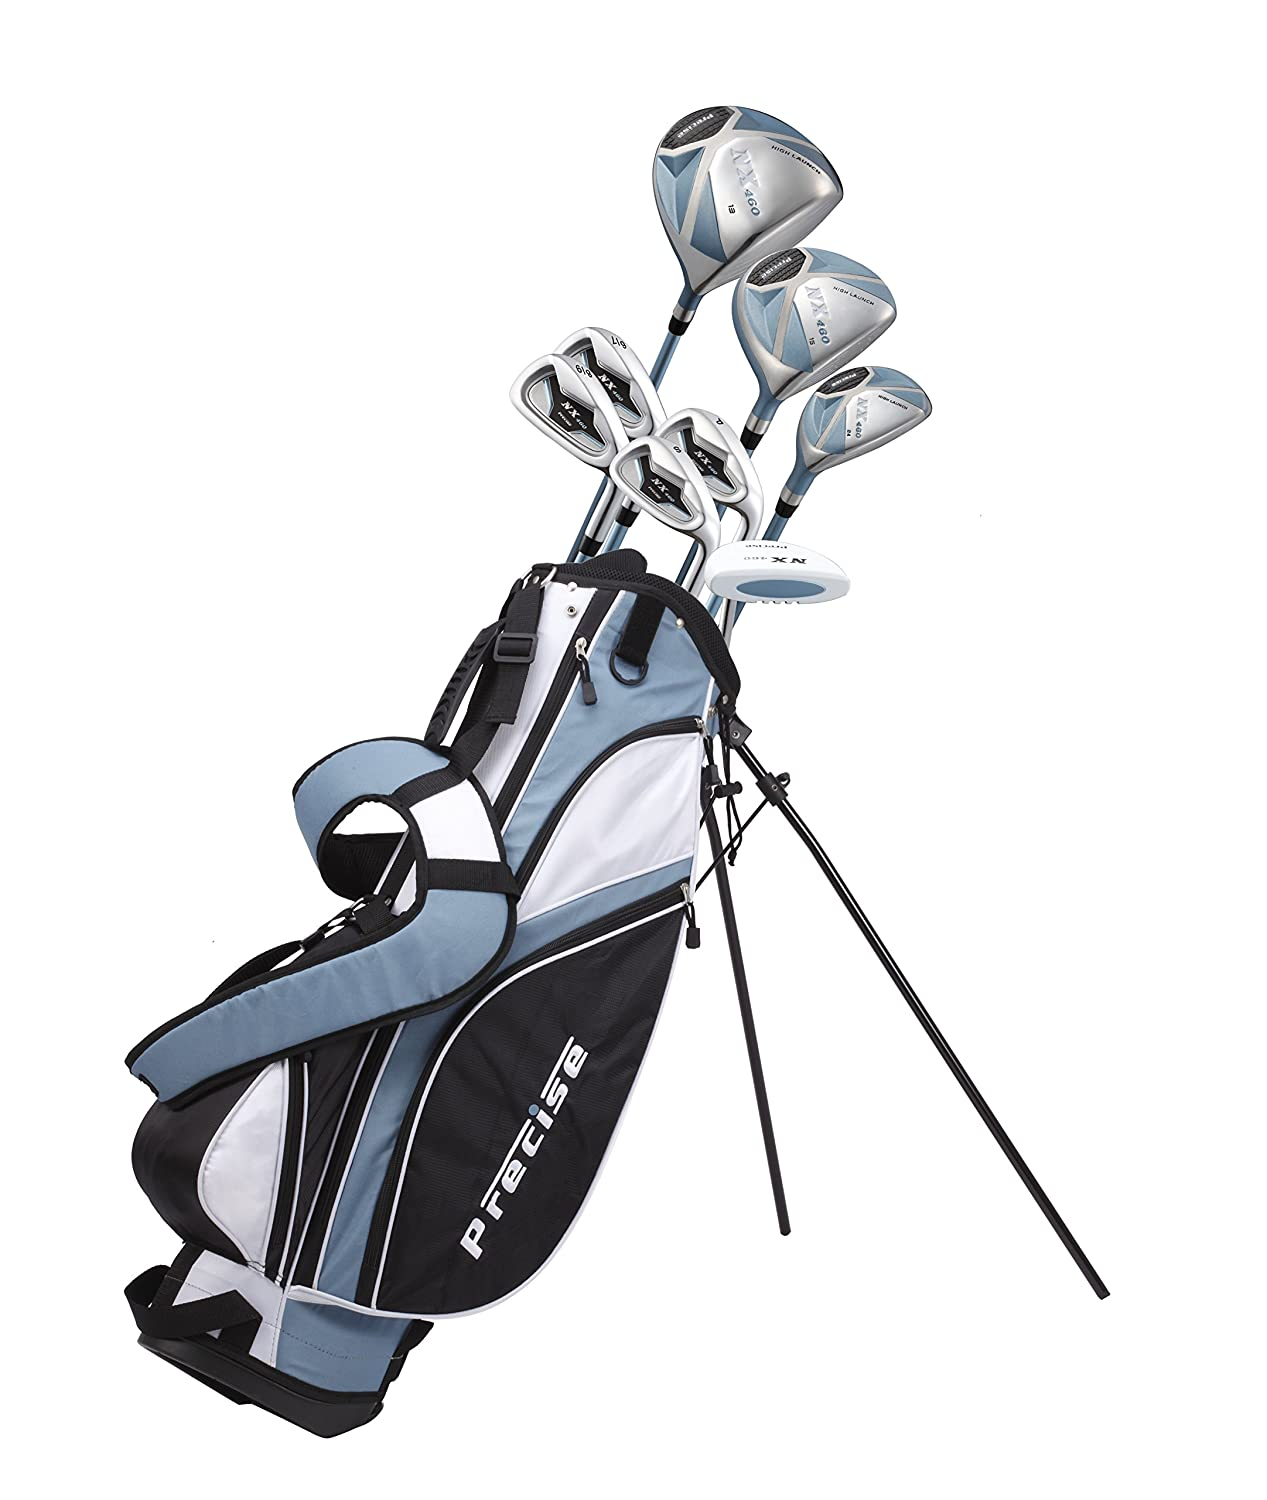 Precise Nx460 Ladies Womens Complete Golf Clubs Set Includes Driver, Fairway, Hybrid, 4 Irons, Putter, Bag, 3 H/C's   2 Sizes   Regular And Petite Size! by Precise